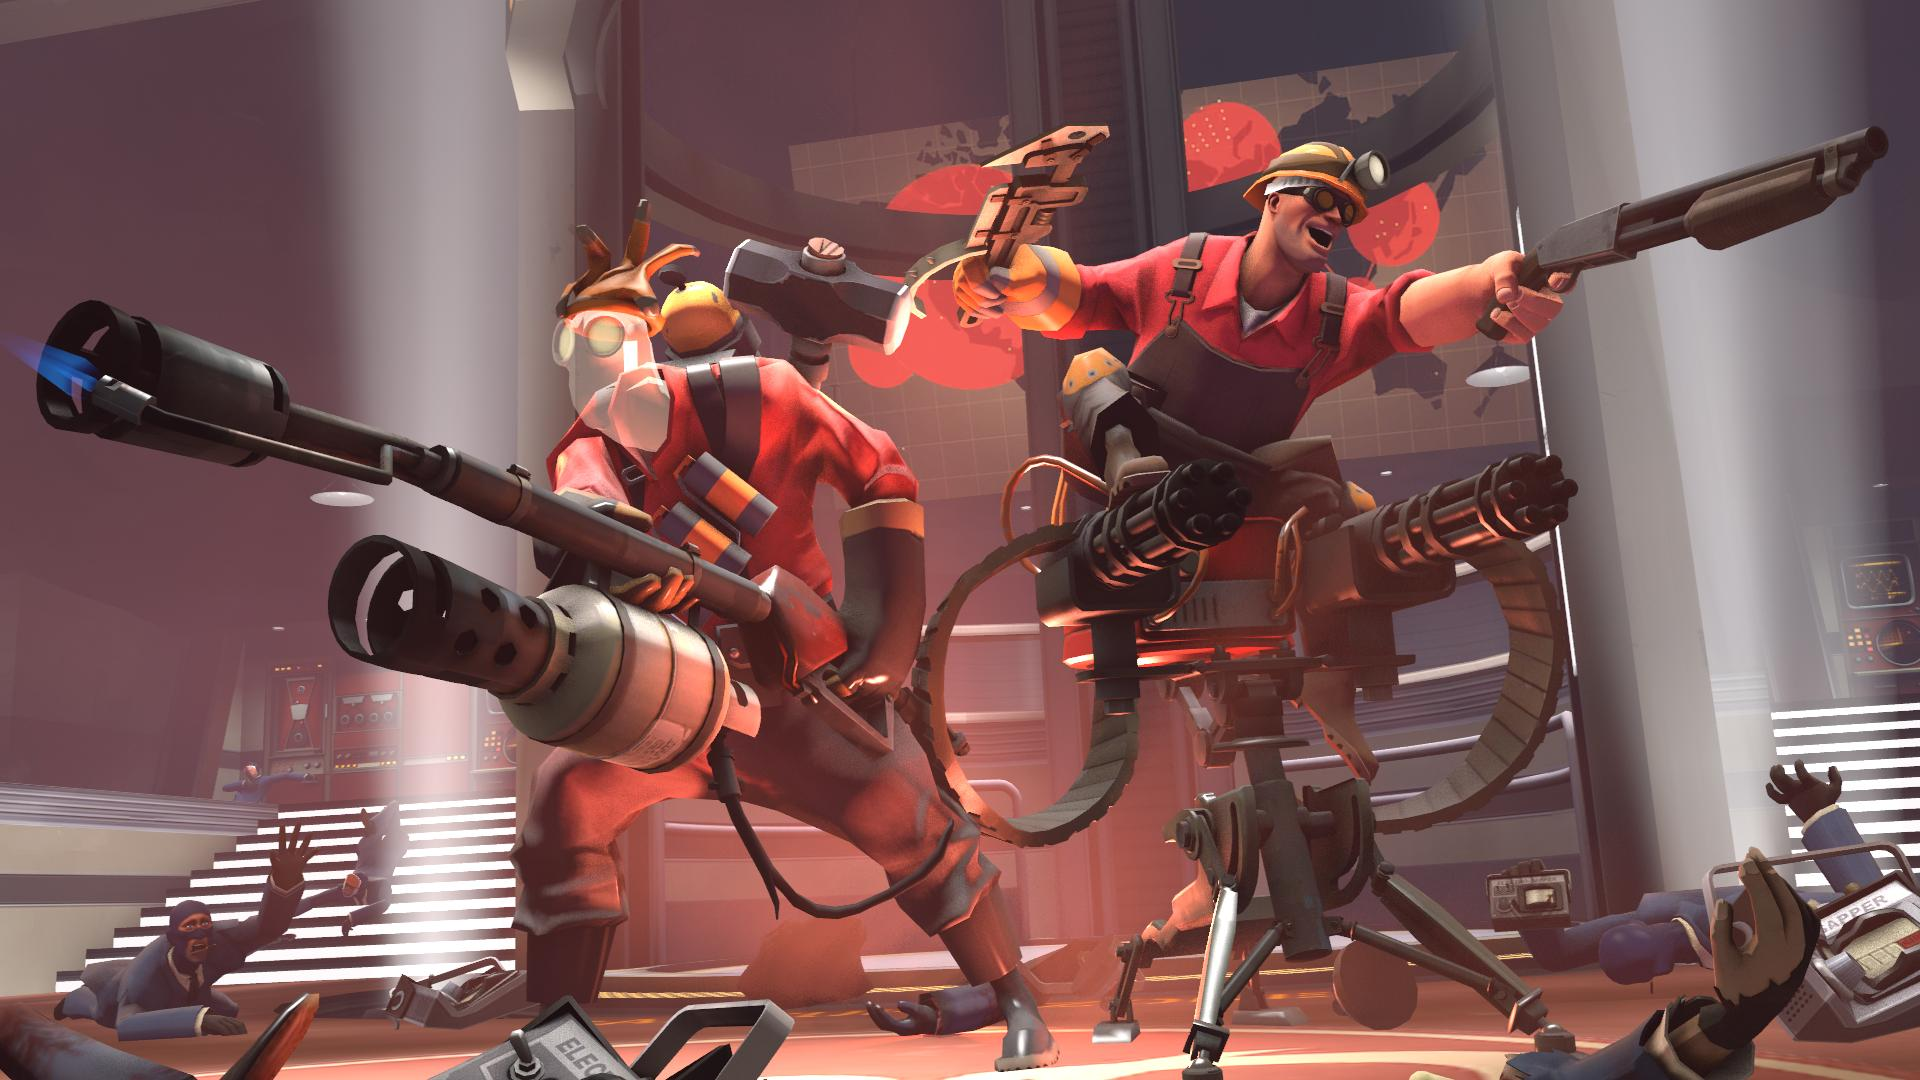 Team Fortress 2 Background Posted By Christopher Mercado